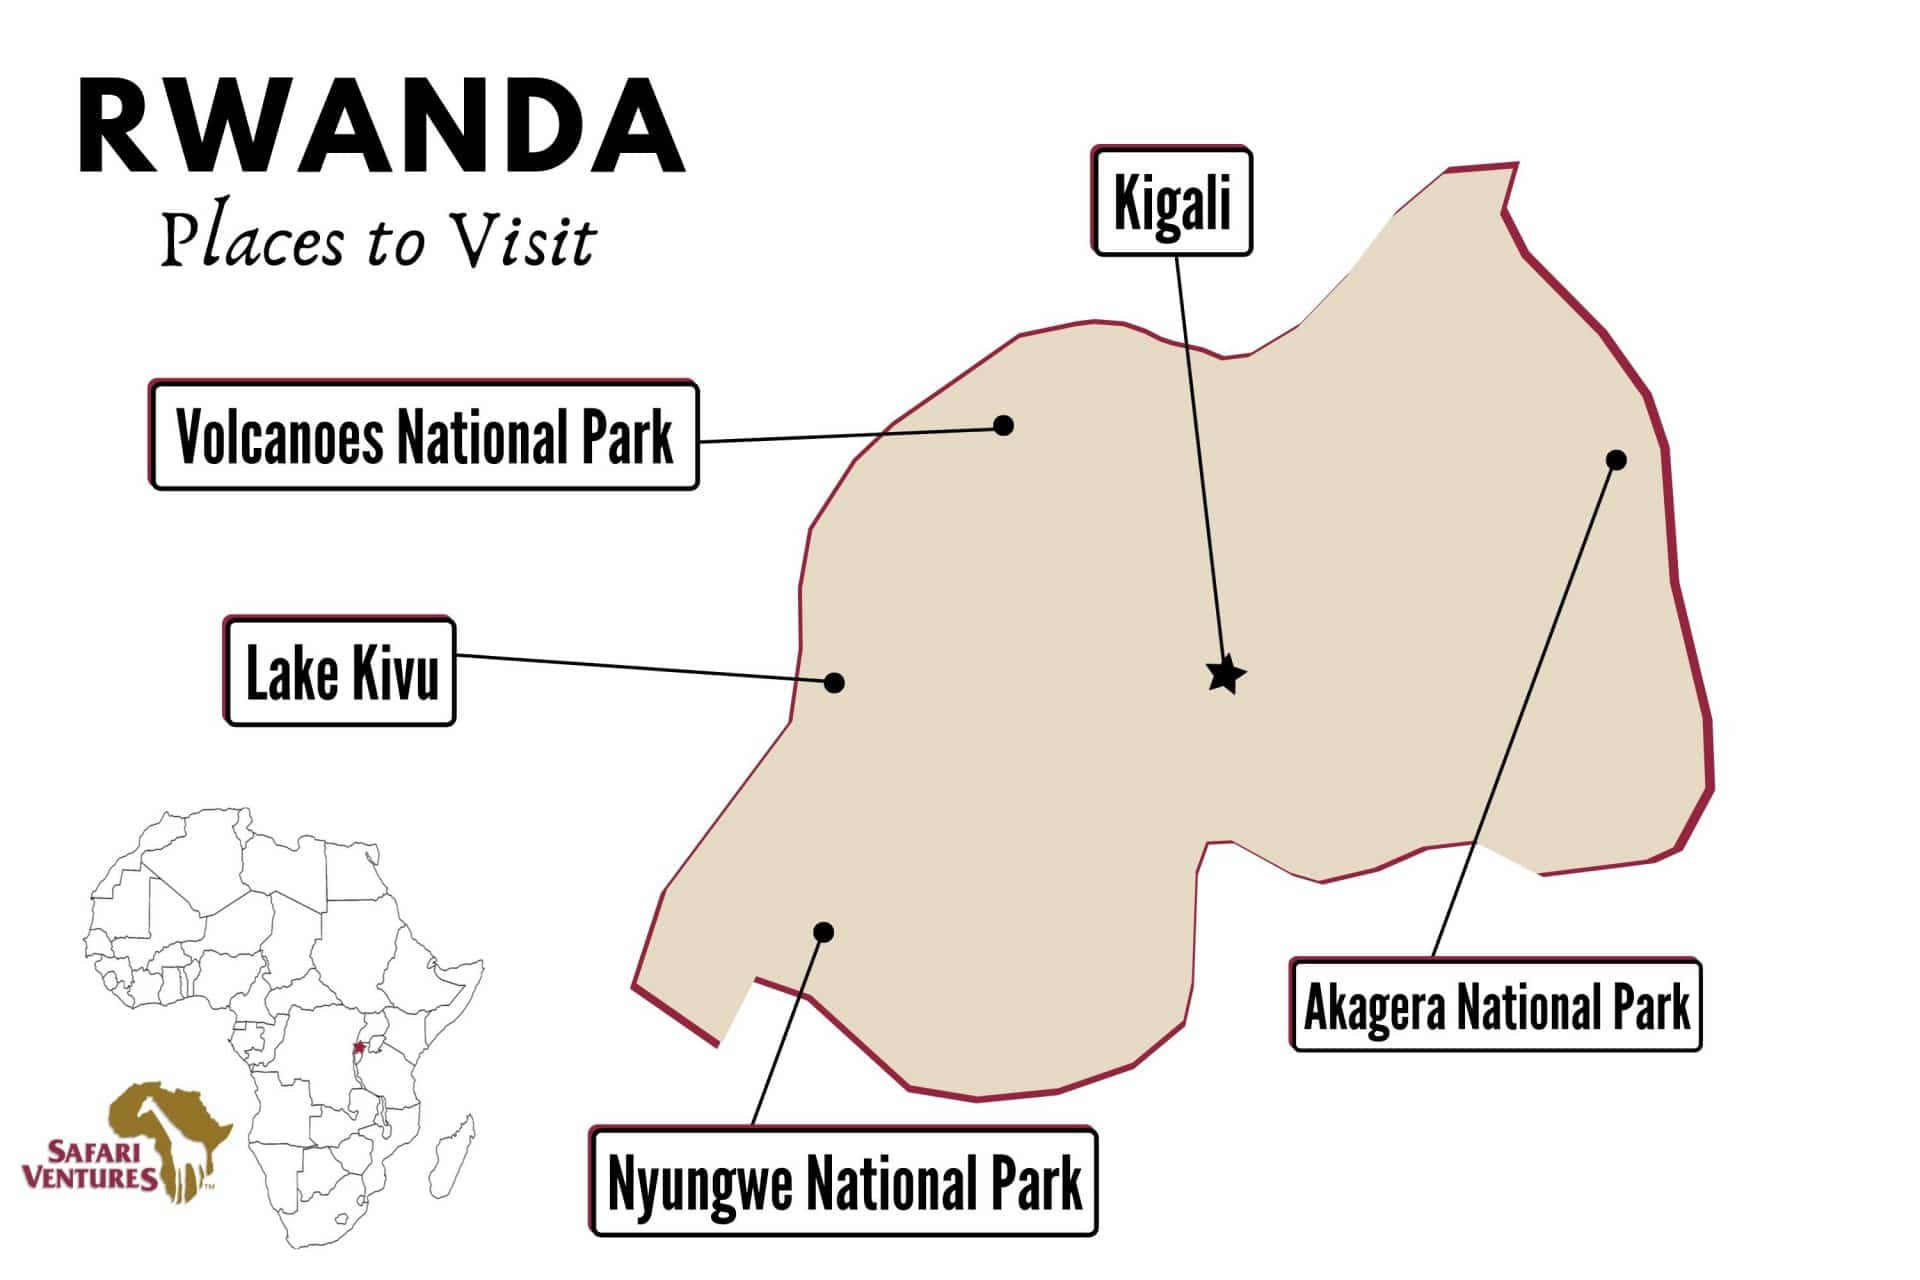 Places to visit in Rwanda